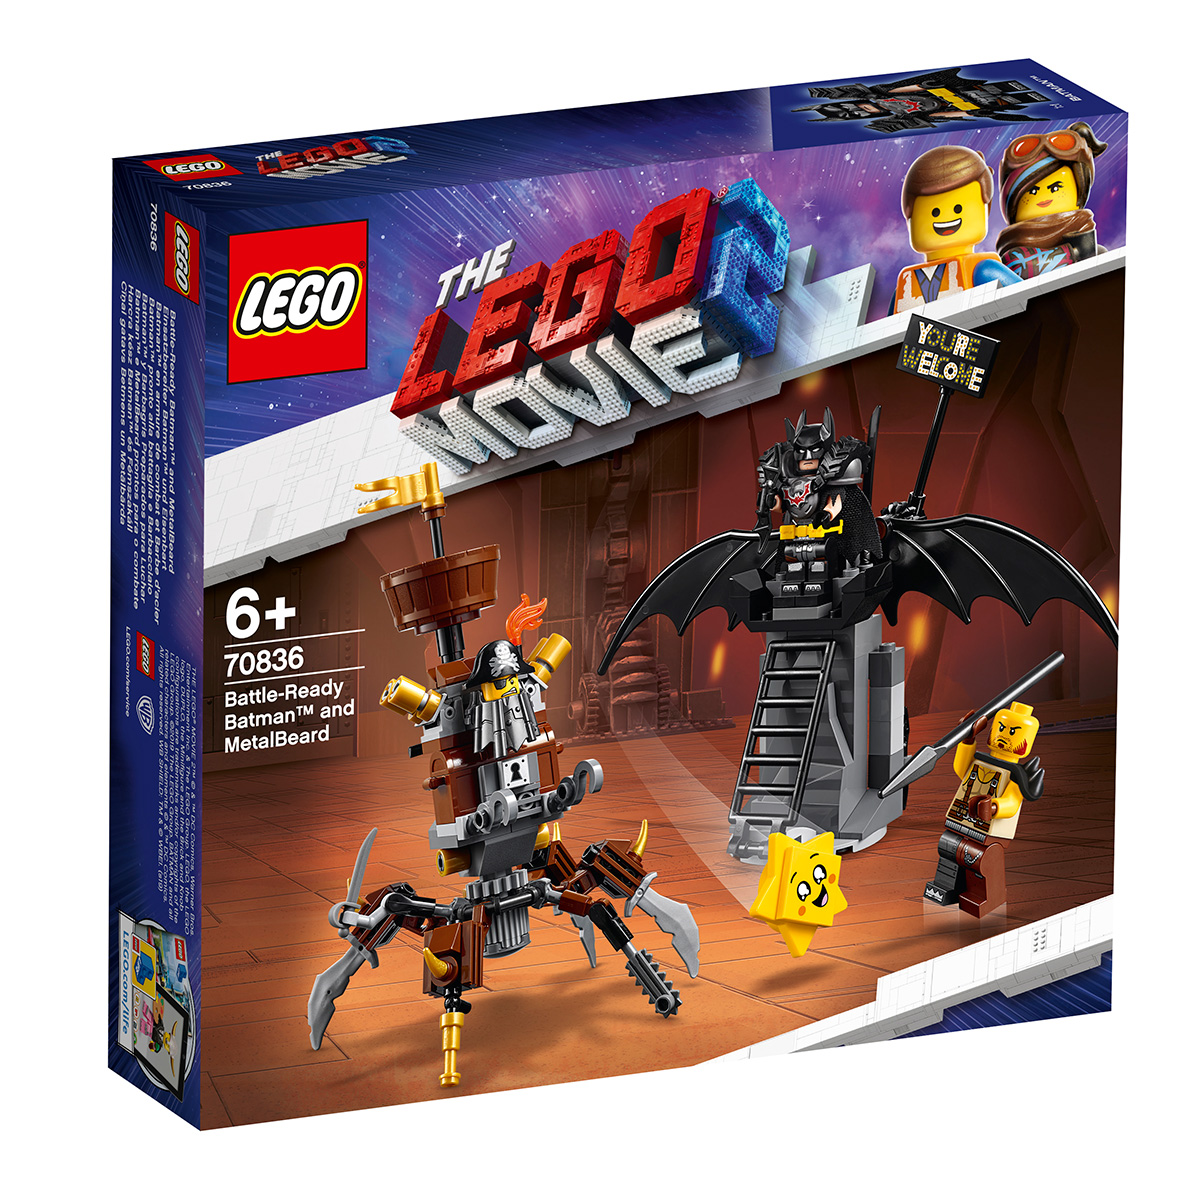 The LEGO Movie 2 Building Sets